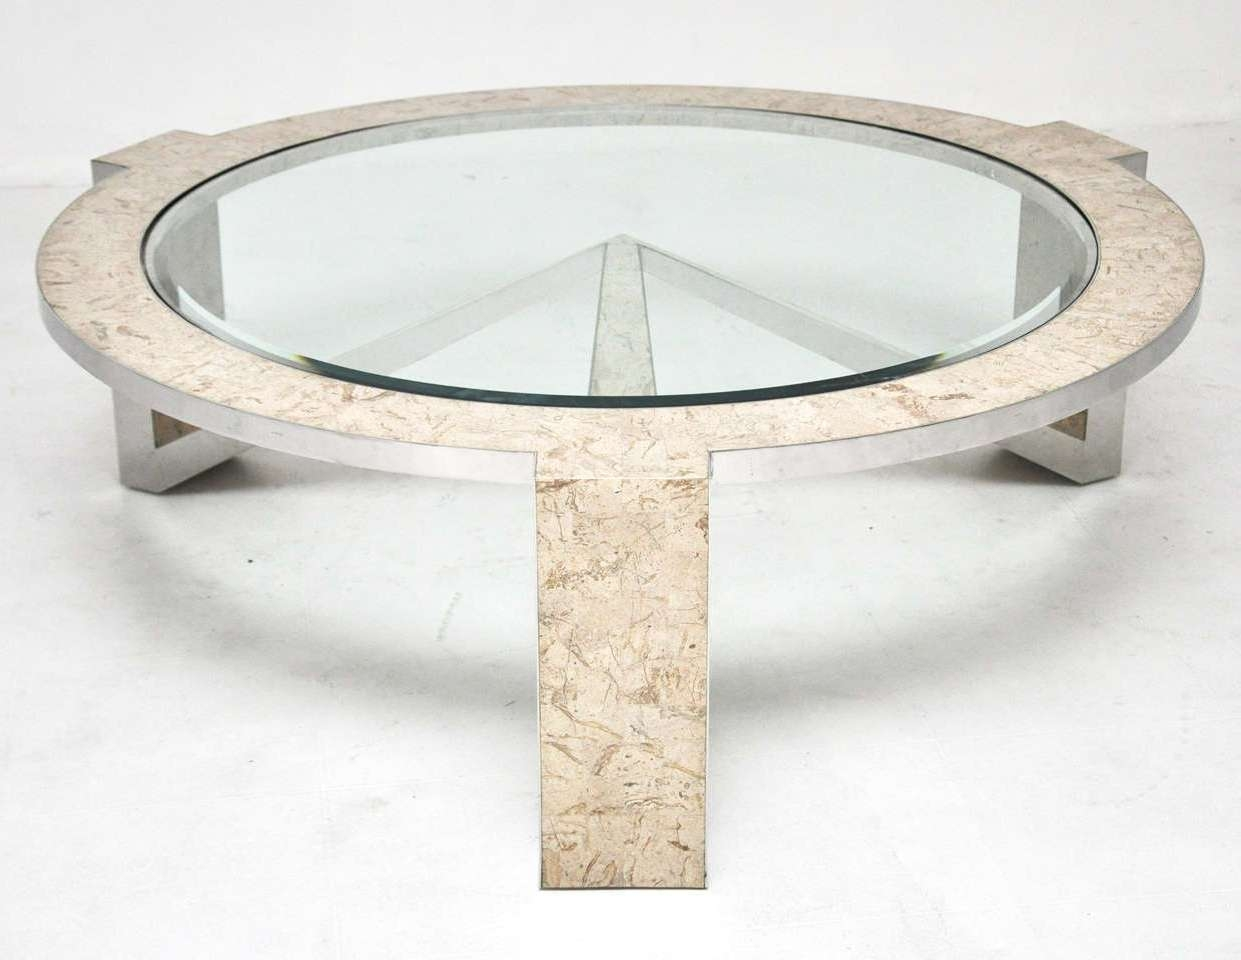 Classy Stone And Glass Coffee Tables For Home Interior Design Throughout Trendy Glass And Stone Coffee Table (View 3 of 20)